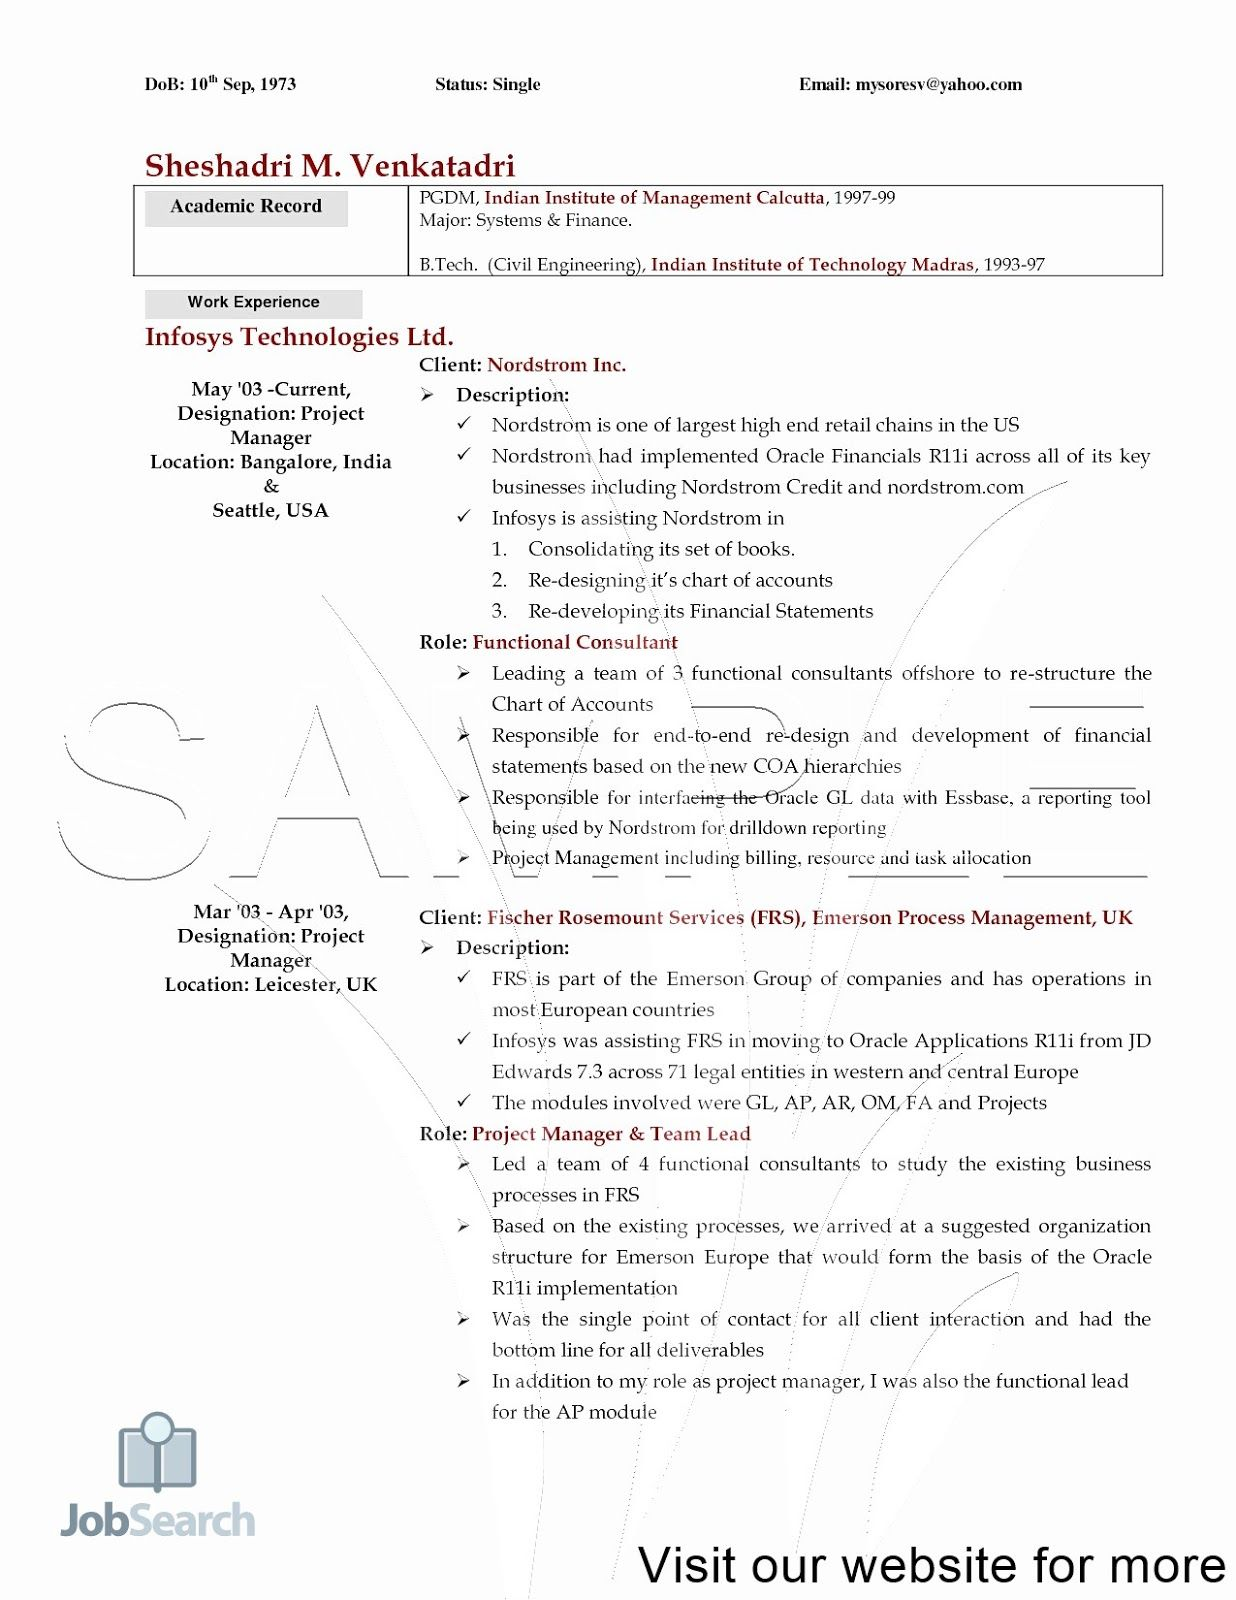 Sample Resume Registered Nurse Entry Level 2020 in 2020